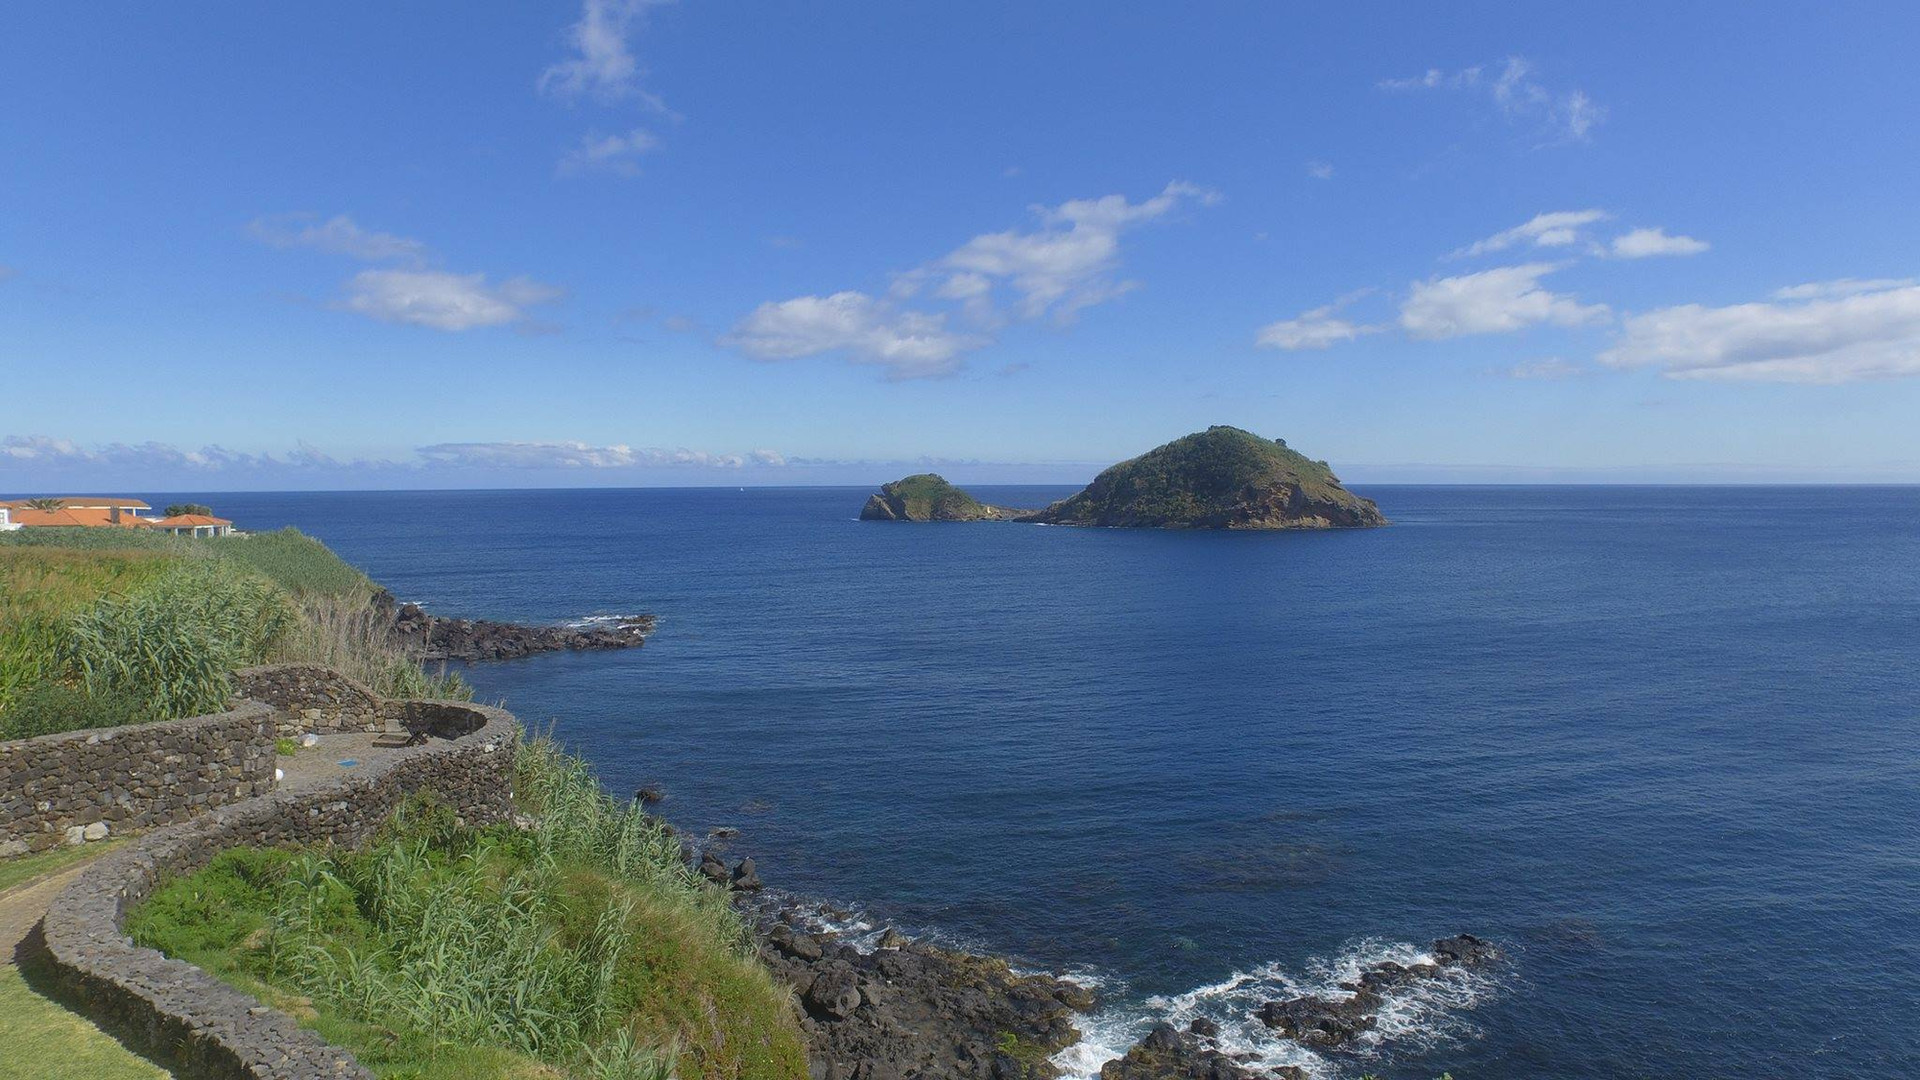 Seaview of wedding venue in the Azores